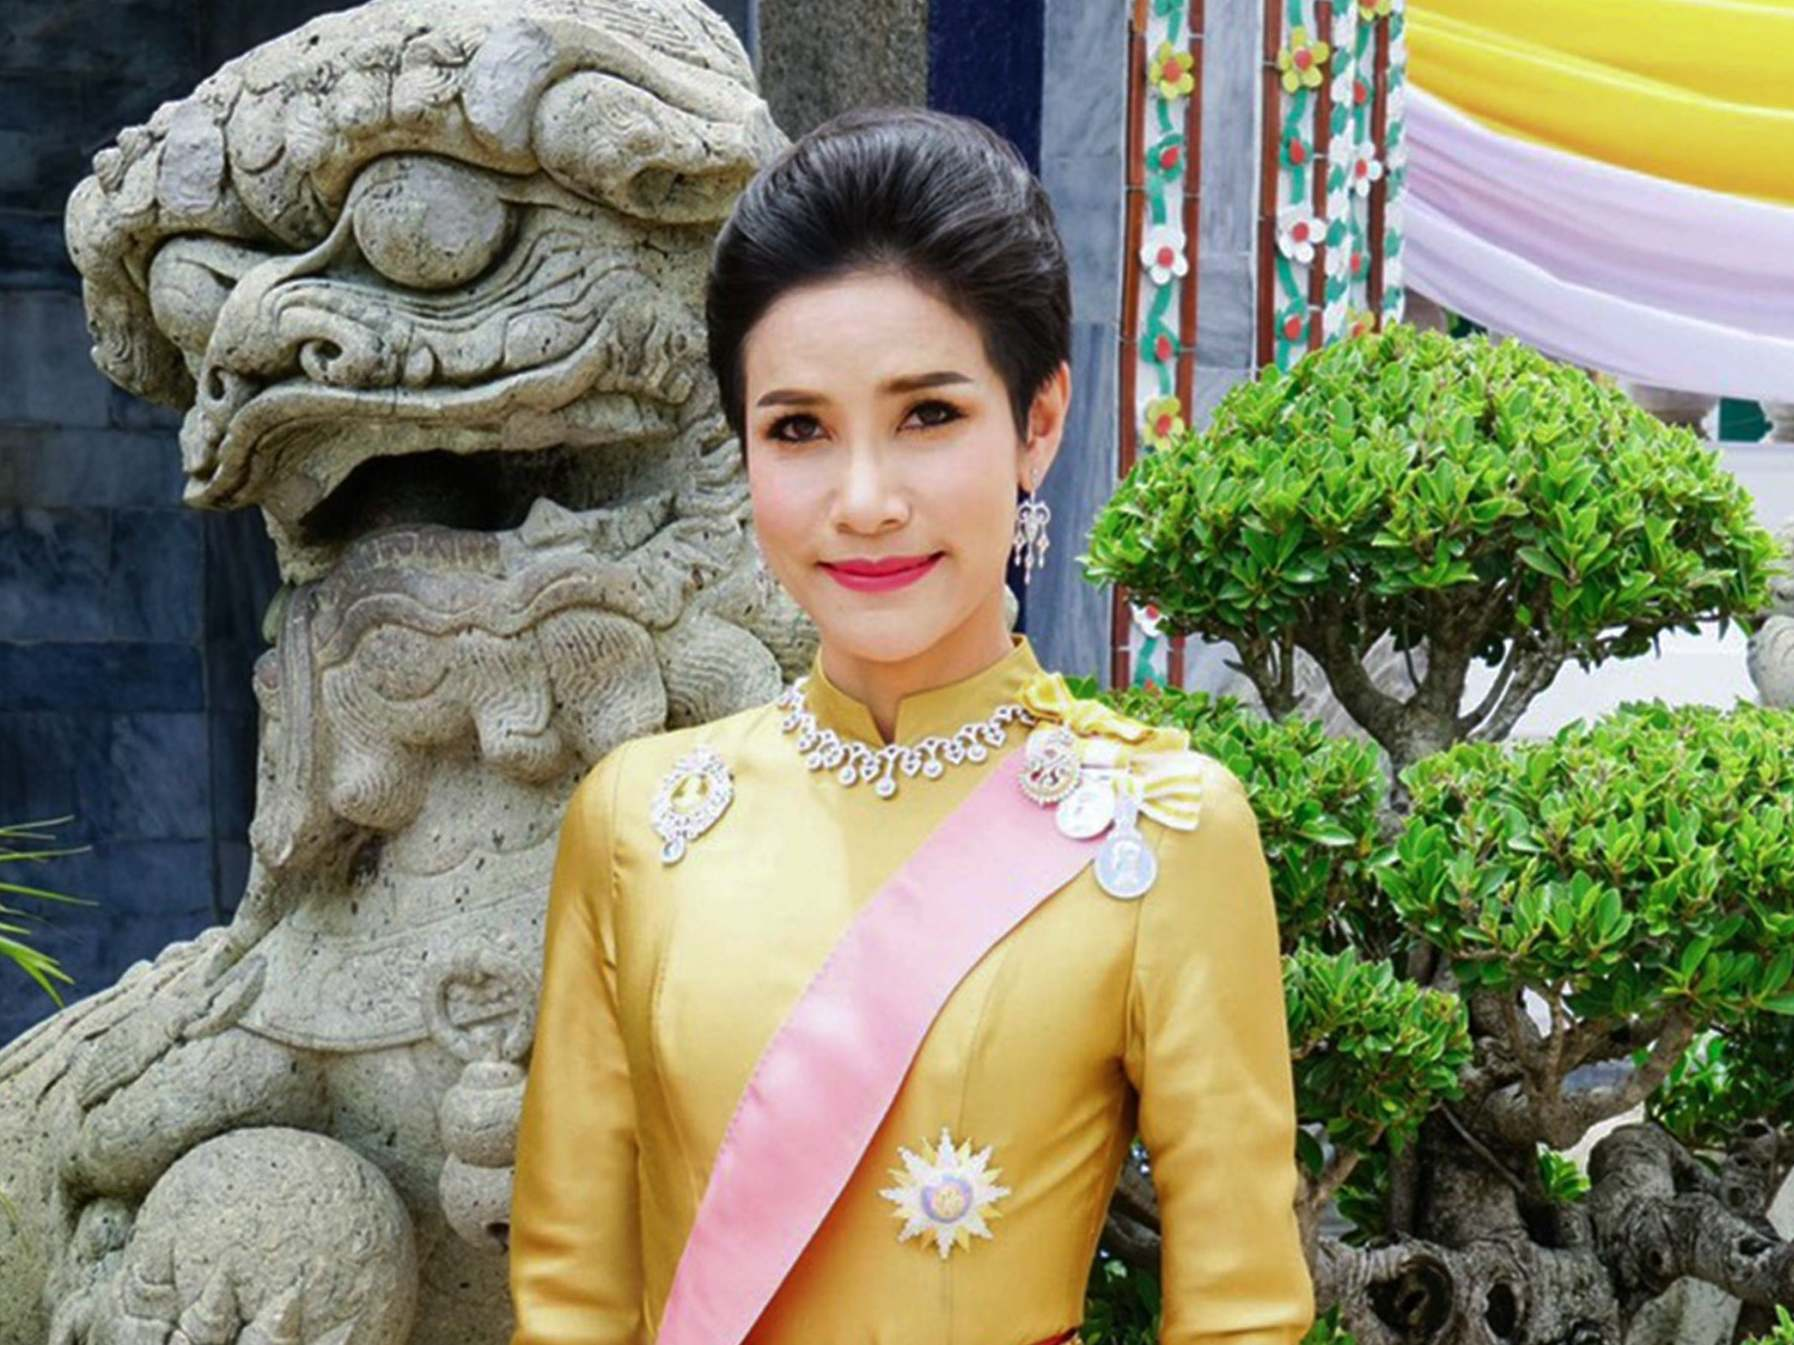 Thailand royal consort: Why was Sineenat Wongvajirapakdi stripped of her titles?